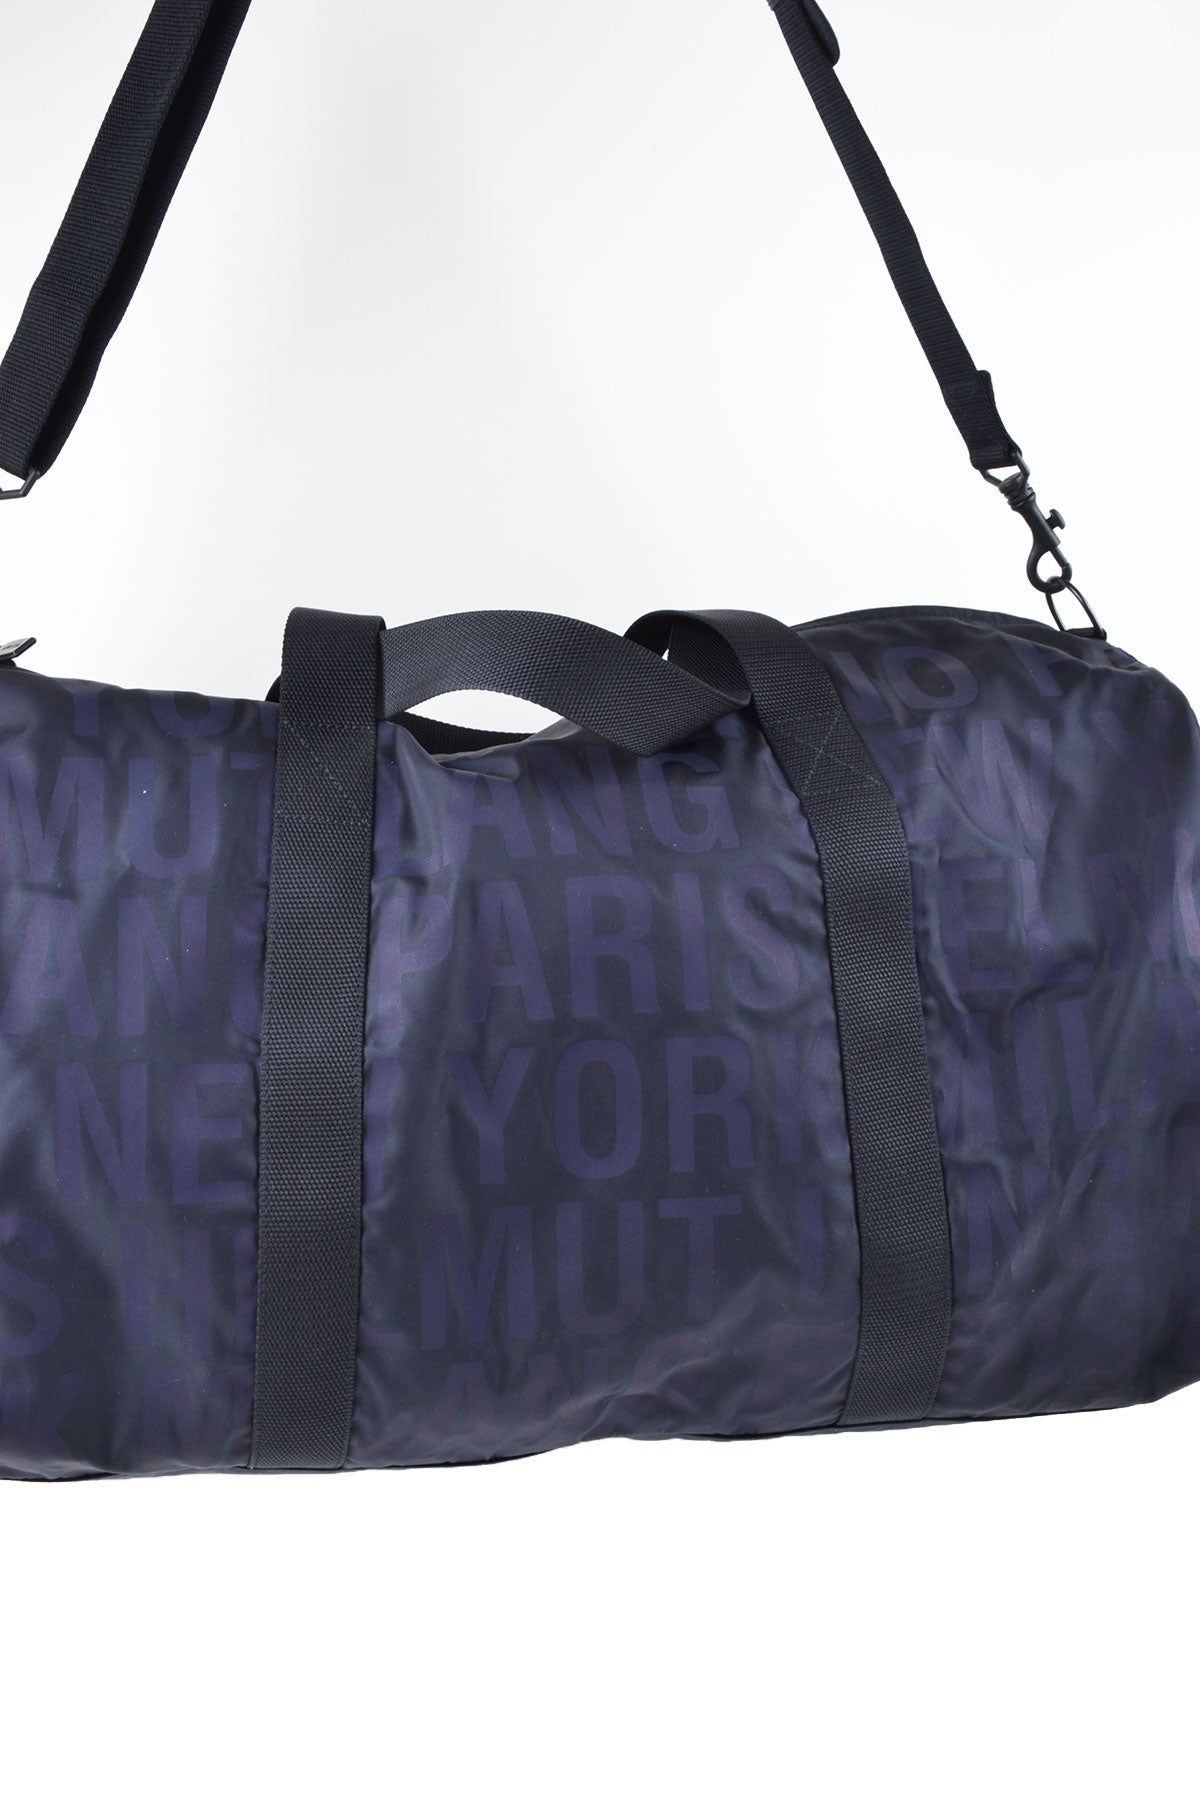 2004 A/W WEEKEND BAG WITH PRINTED BRANDING